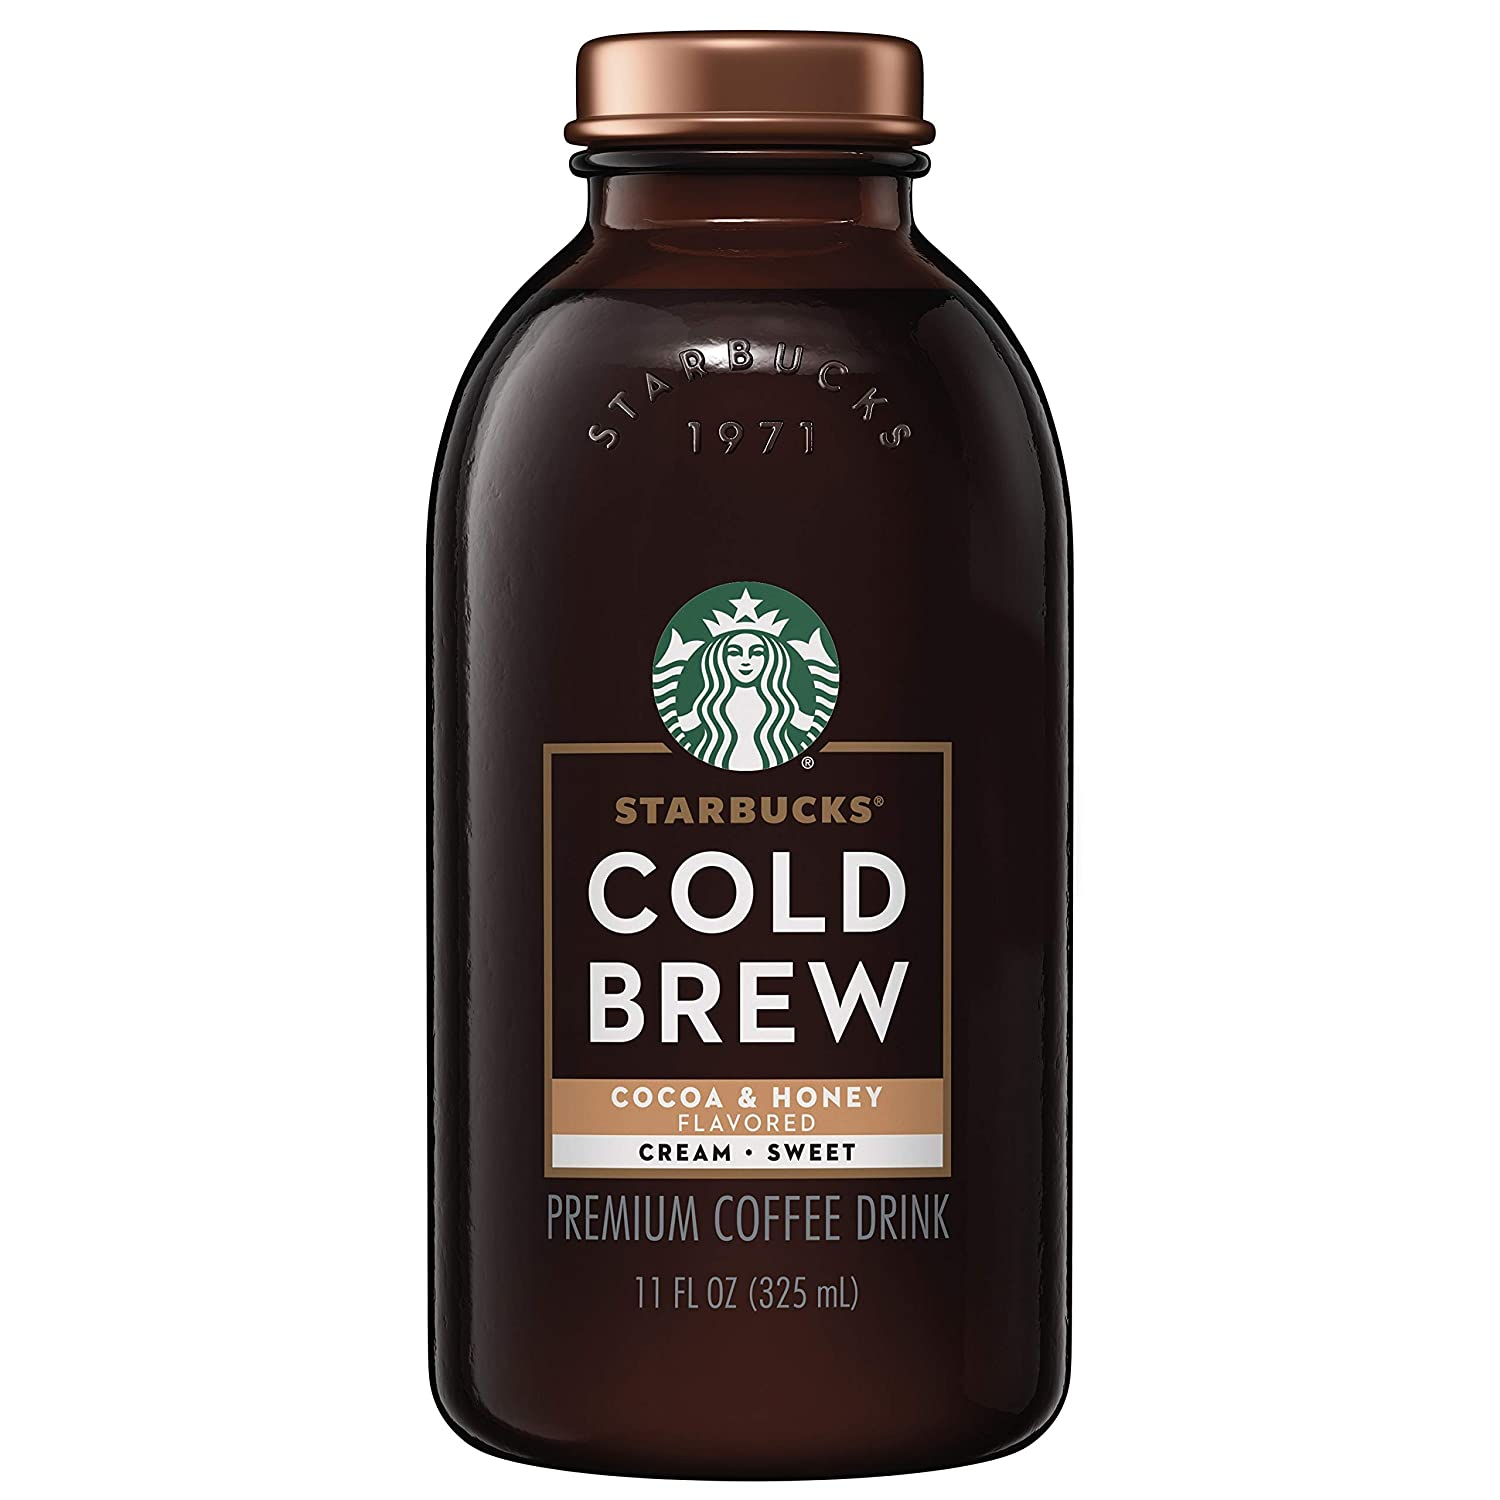 Starbucks Cold Brew Coffee, Cocoa & Honey with Cream, 11 Fl oz Glass Bottles, 6 Count